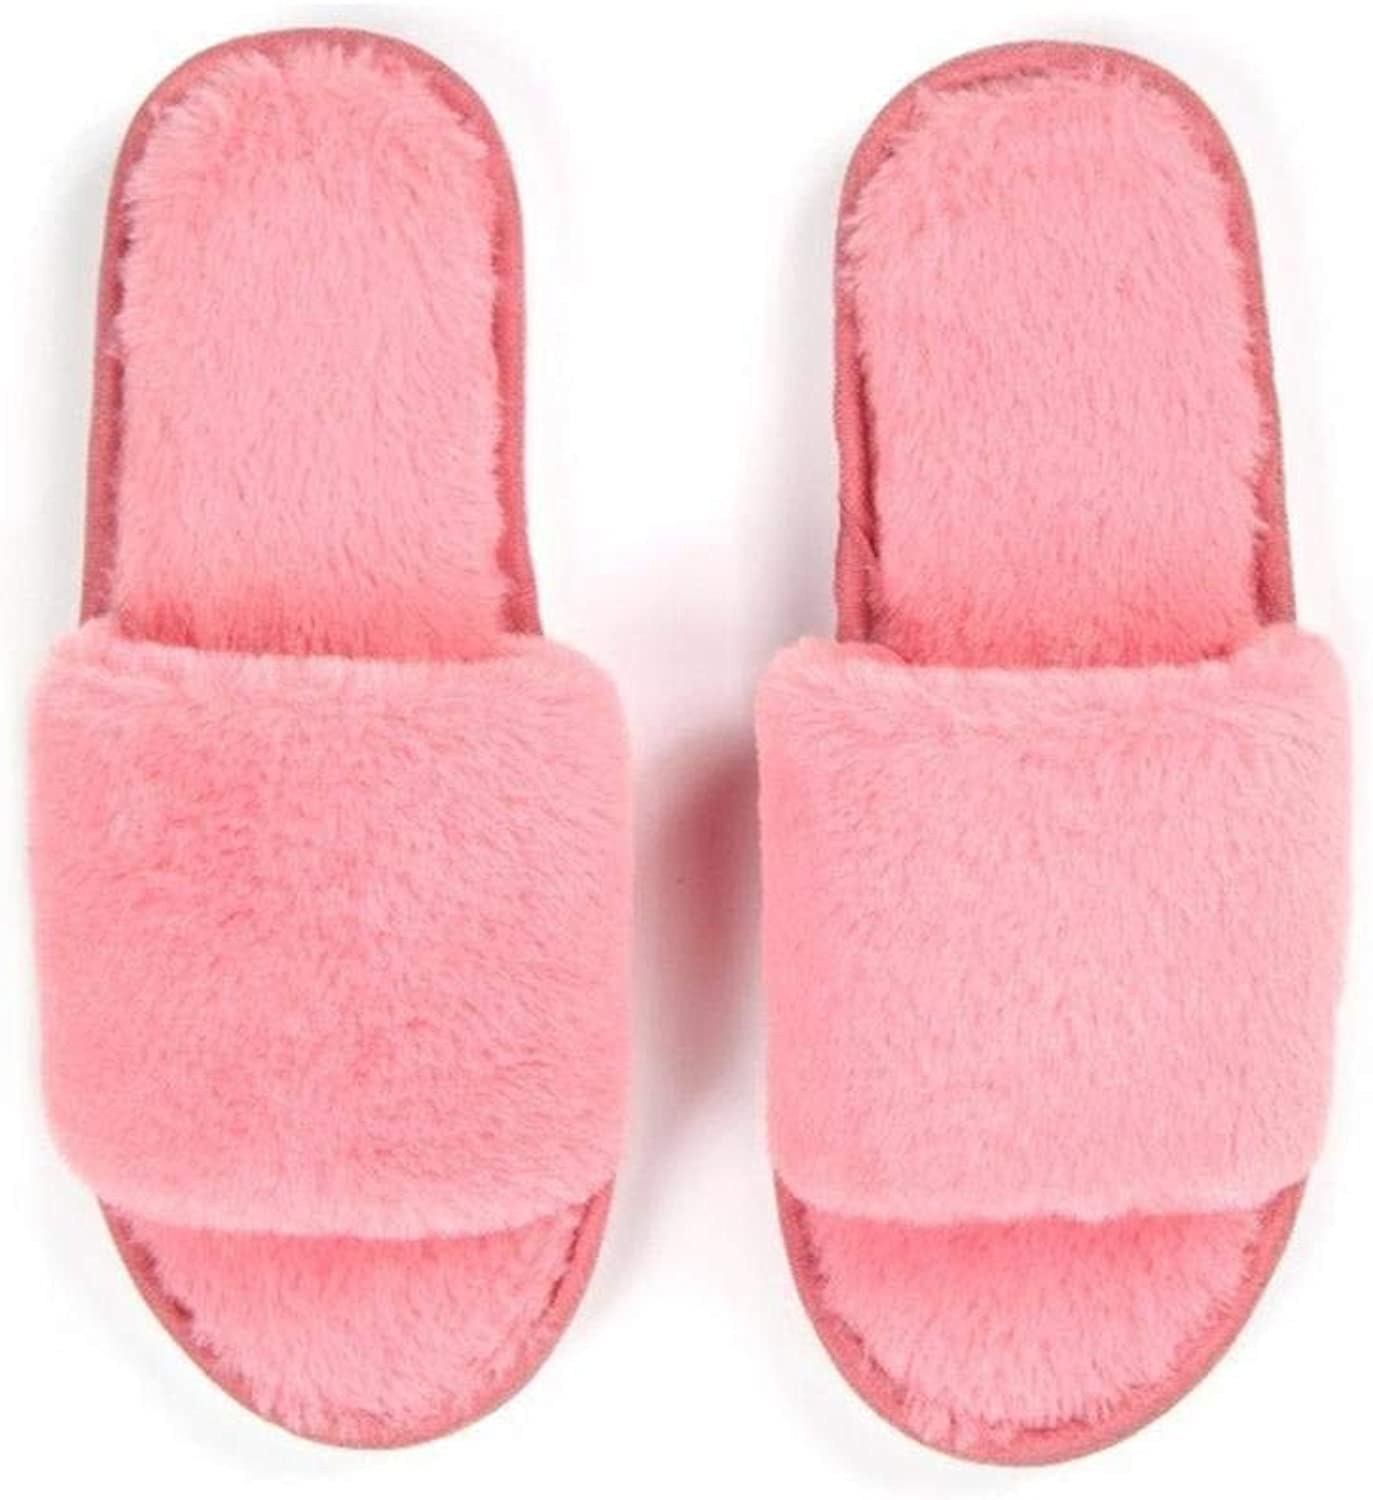 So8ooa Lady Slippers Ladies Wool Slippers Home Interior Leisure Plat Form Keep Warm Slippers for Women Black Pink Purple Slippers